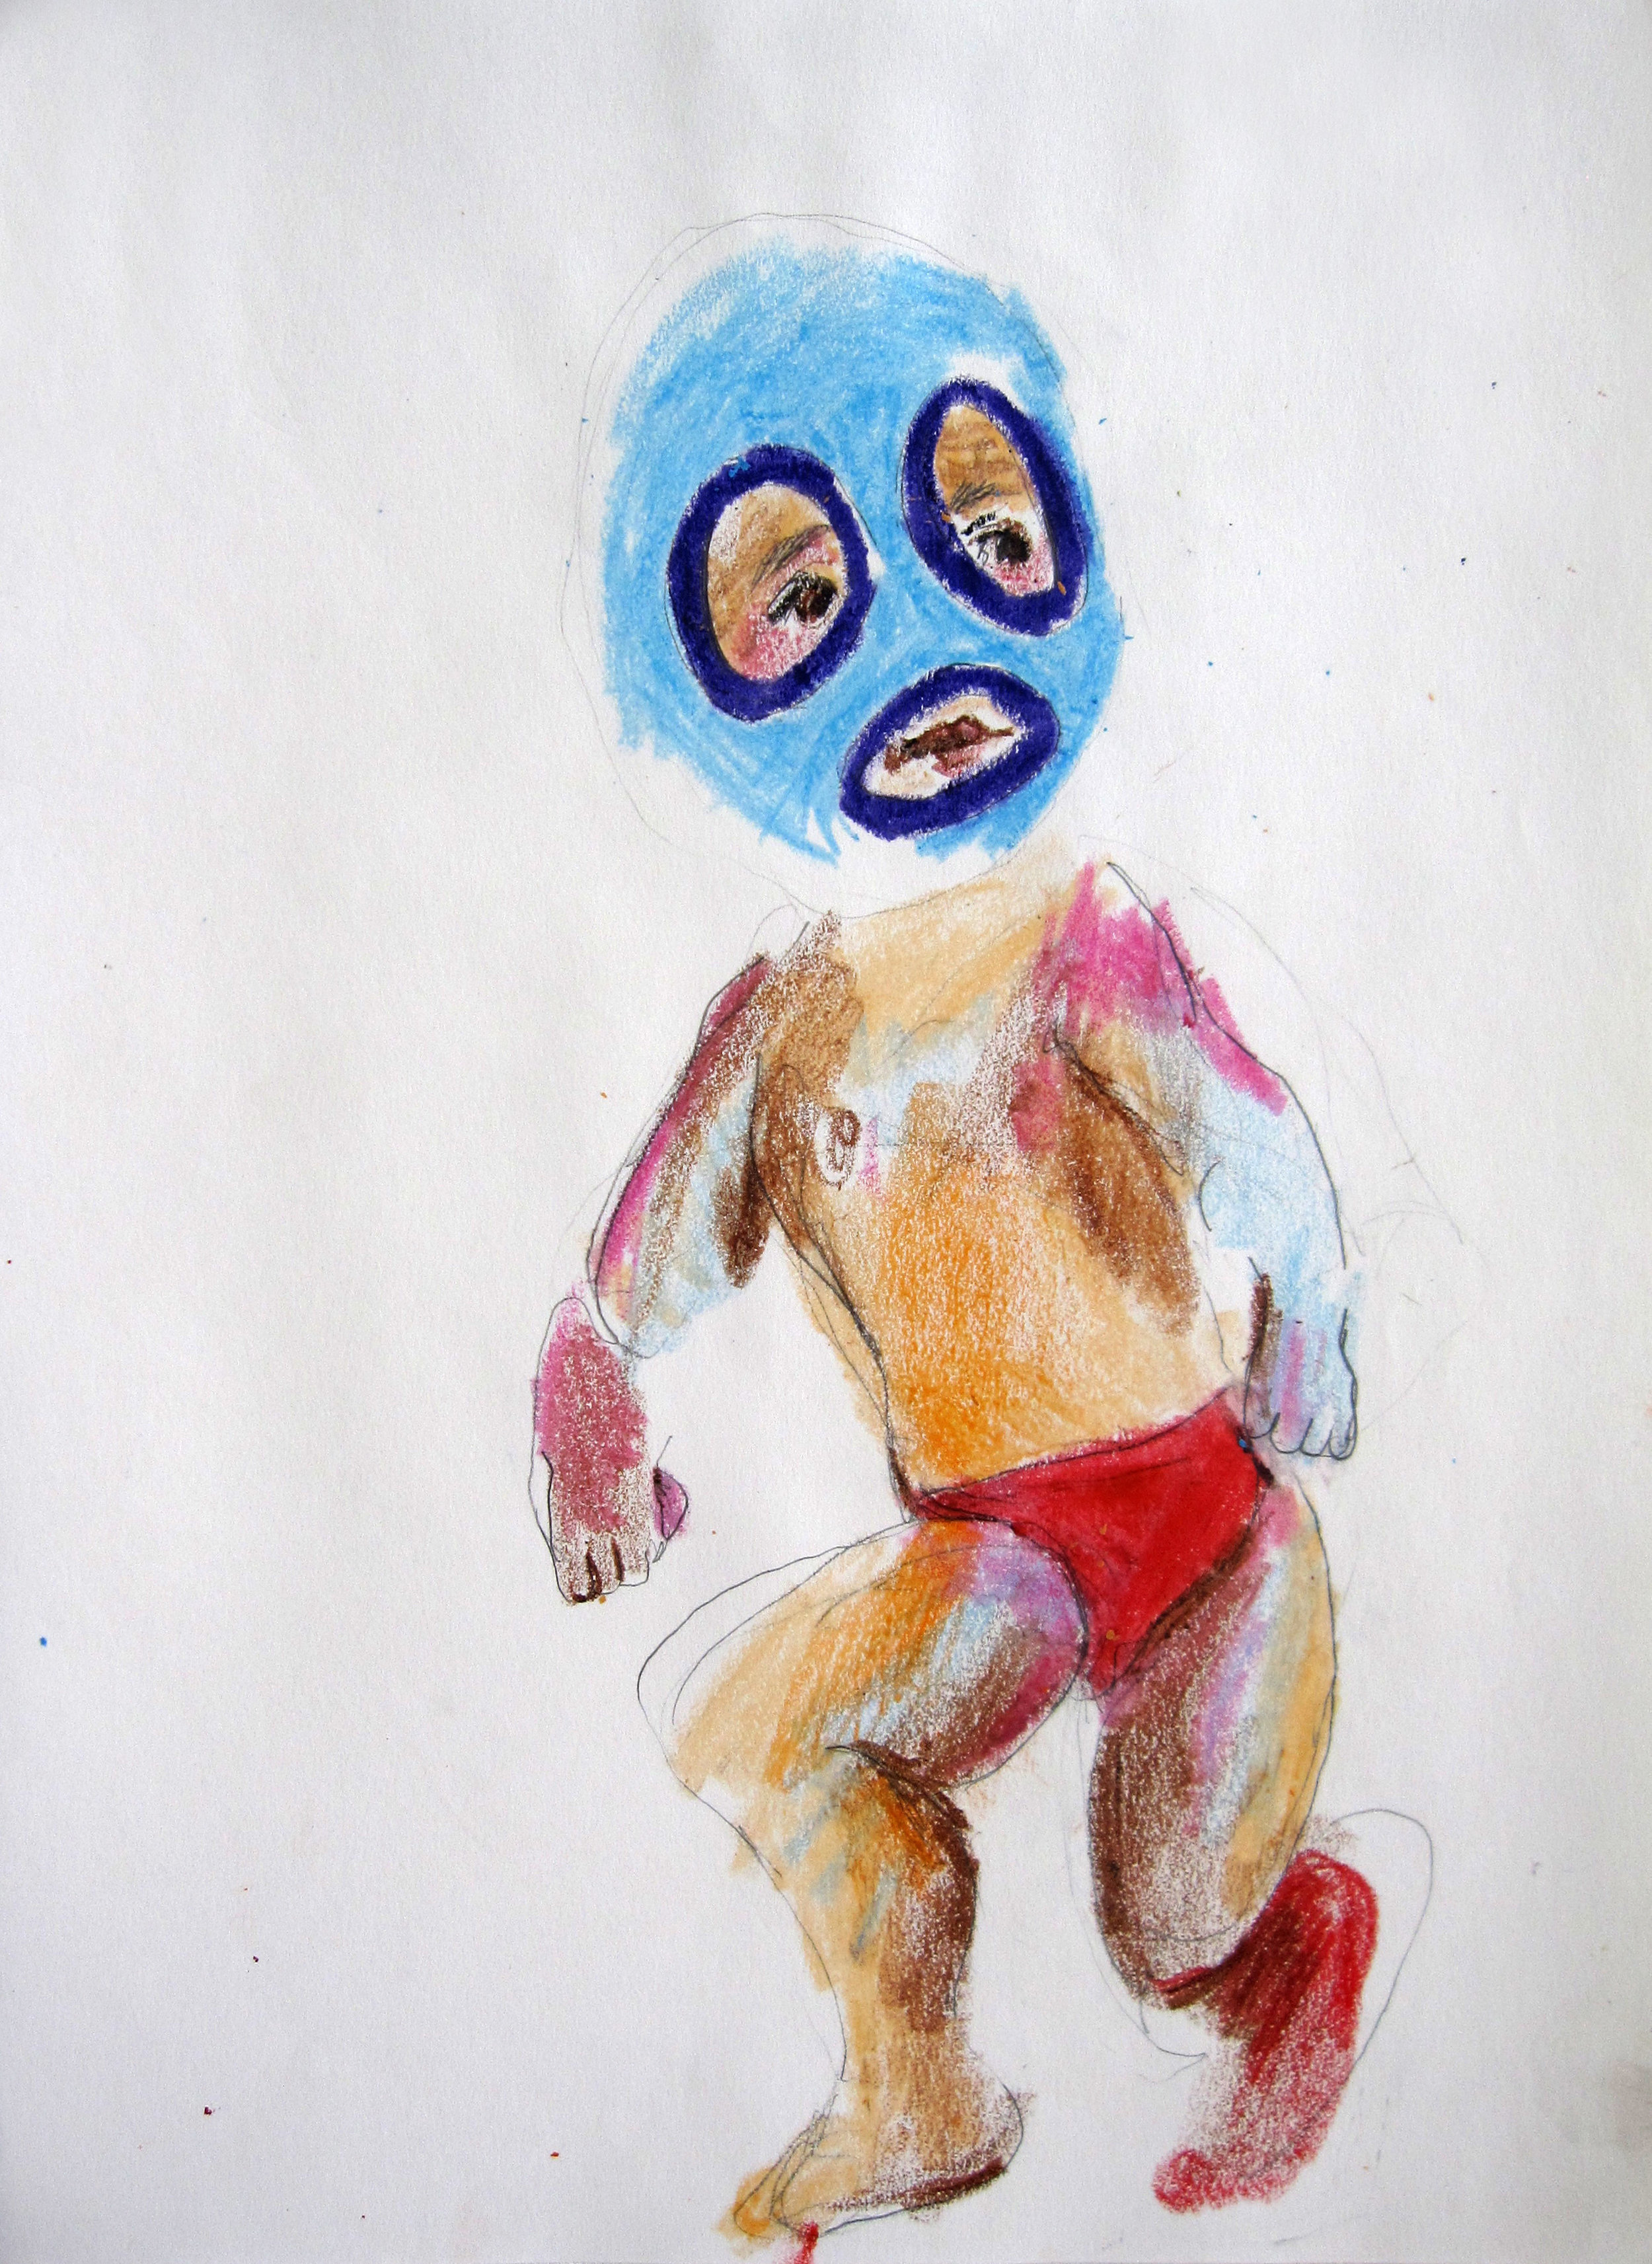 Lucha 6, 2008, Crayon on paper, 14 X11 in.